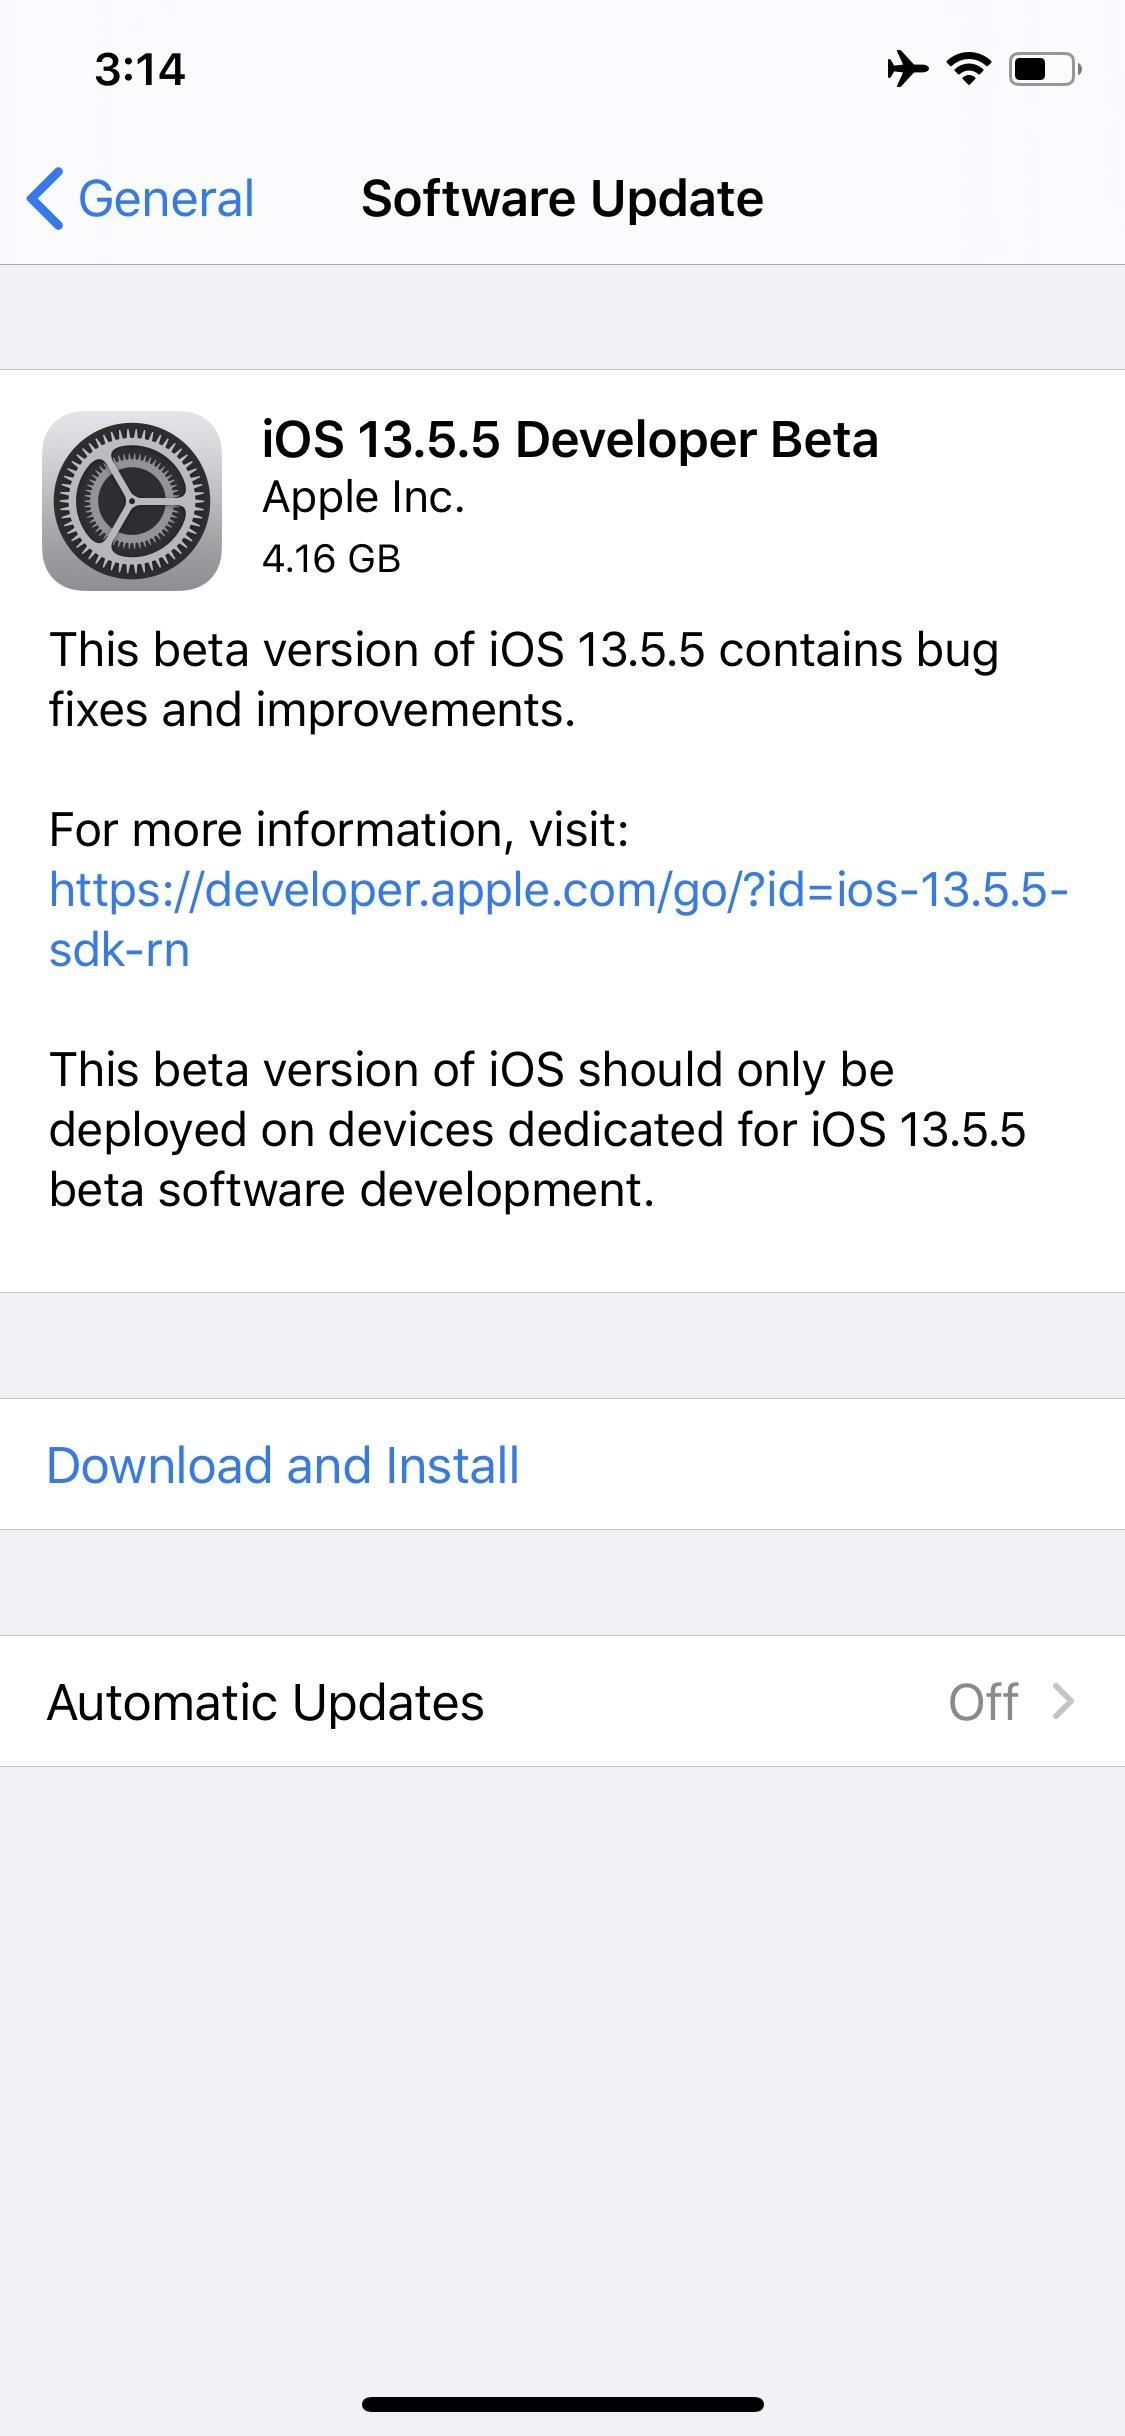 Apple Releases iOS 13.5.5 Developer Beta 1 for iPhone, Includes Evidence of Audio Support in Apple News+